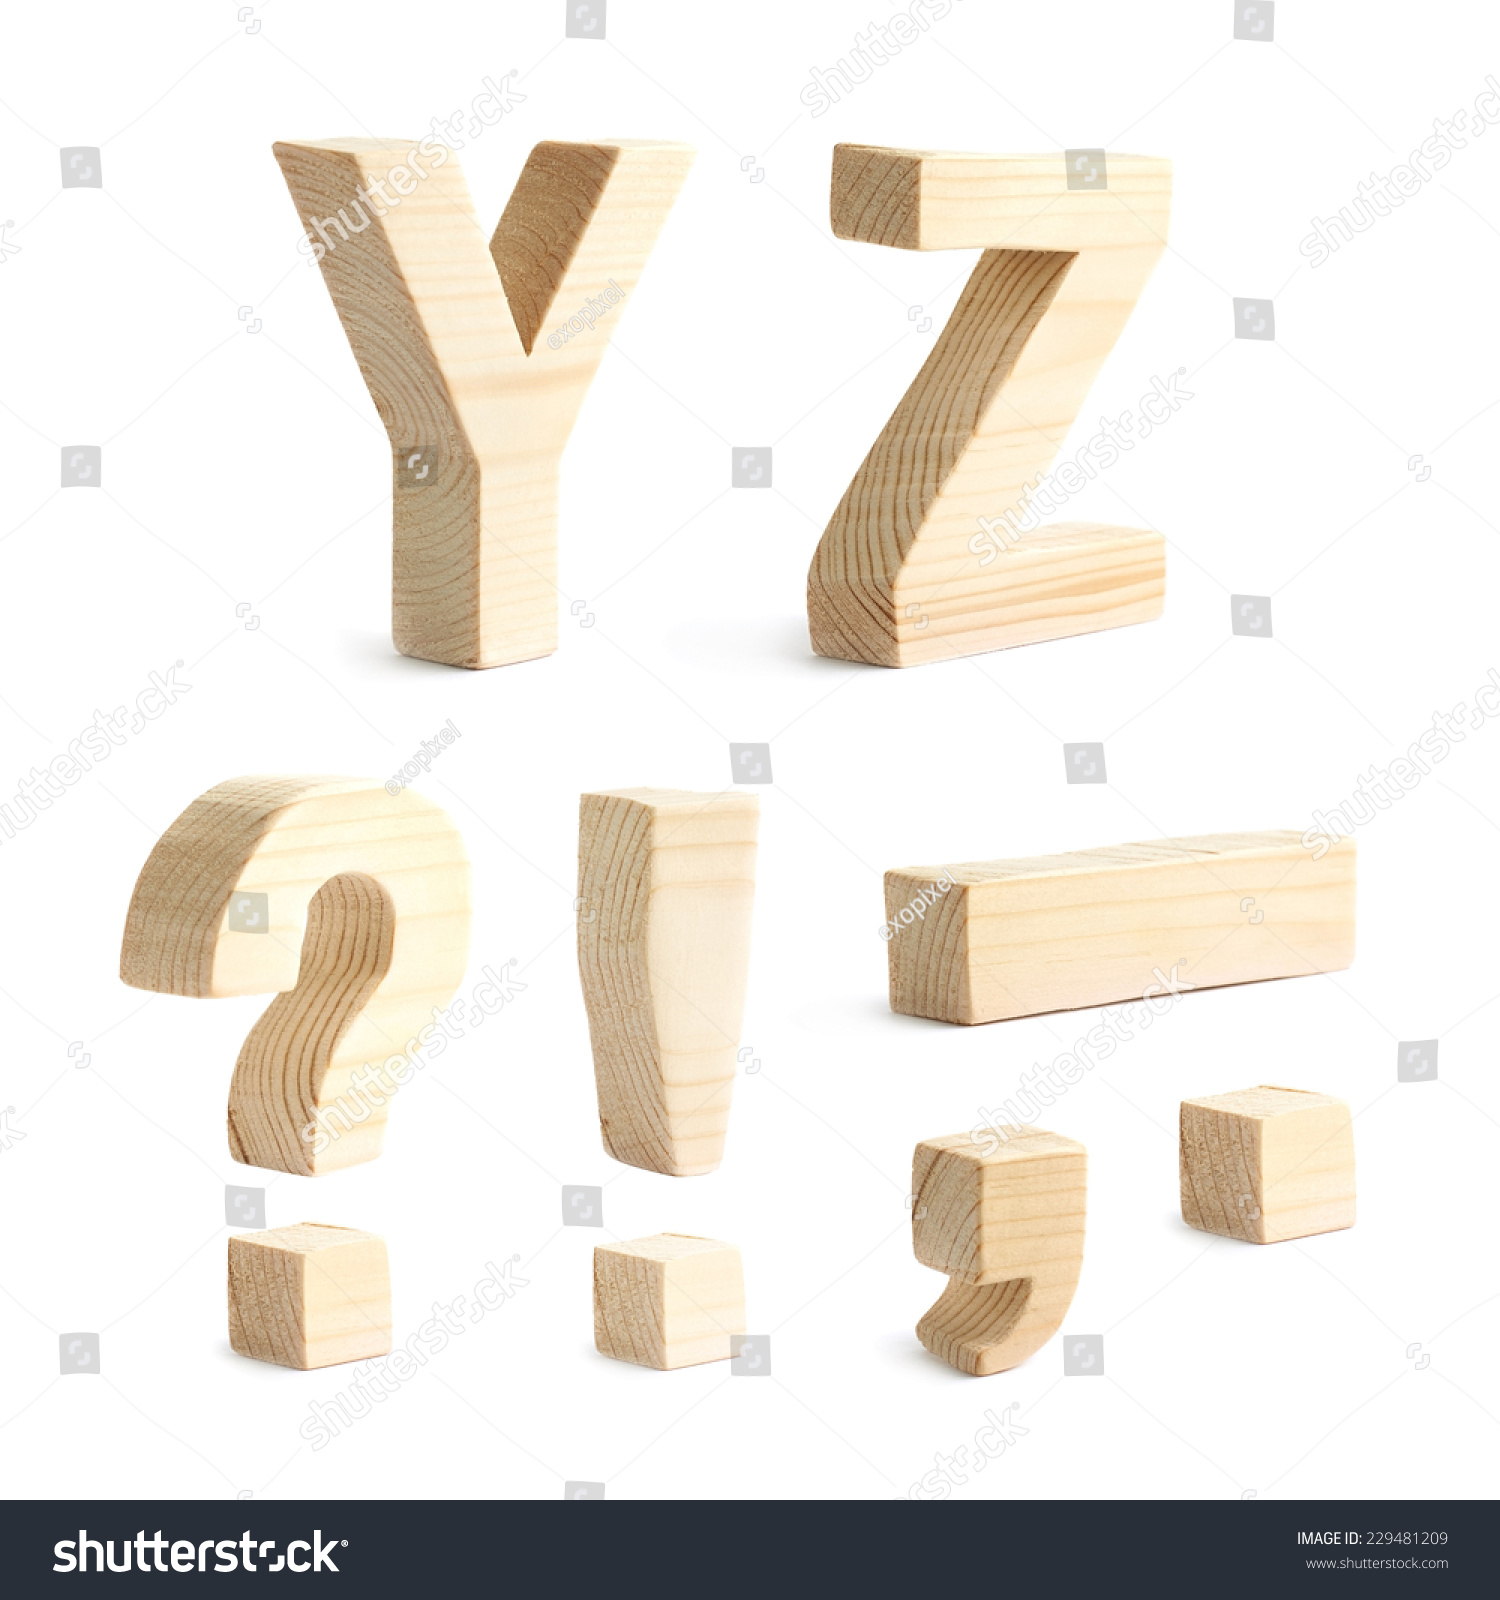 Set Of Multiple Wooden Block Character Symbols Y And Z Letters And